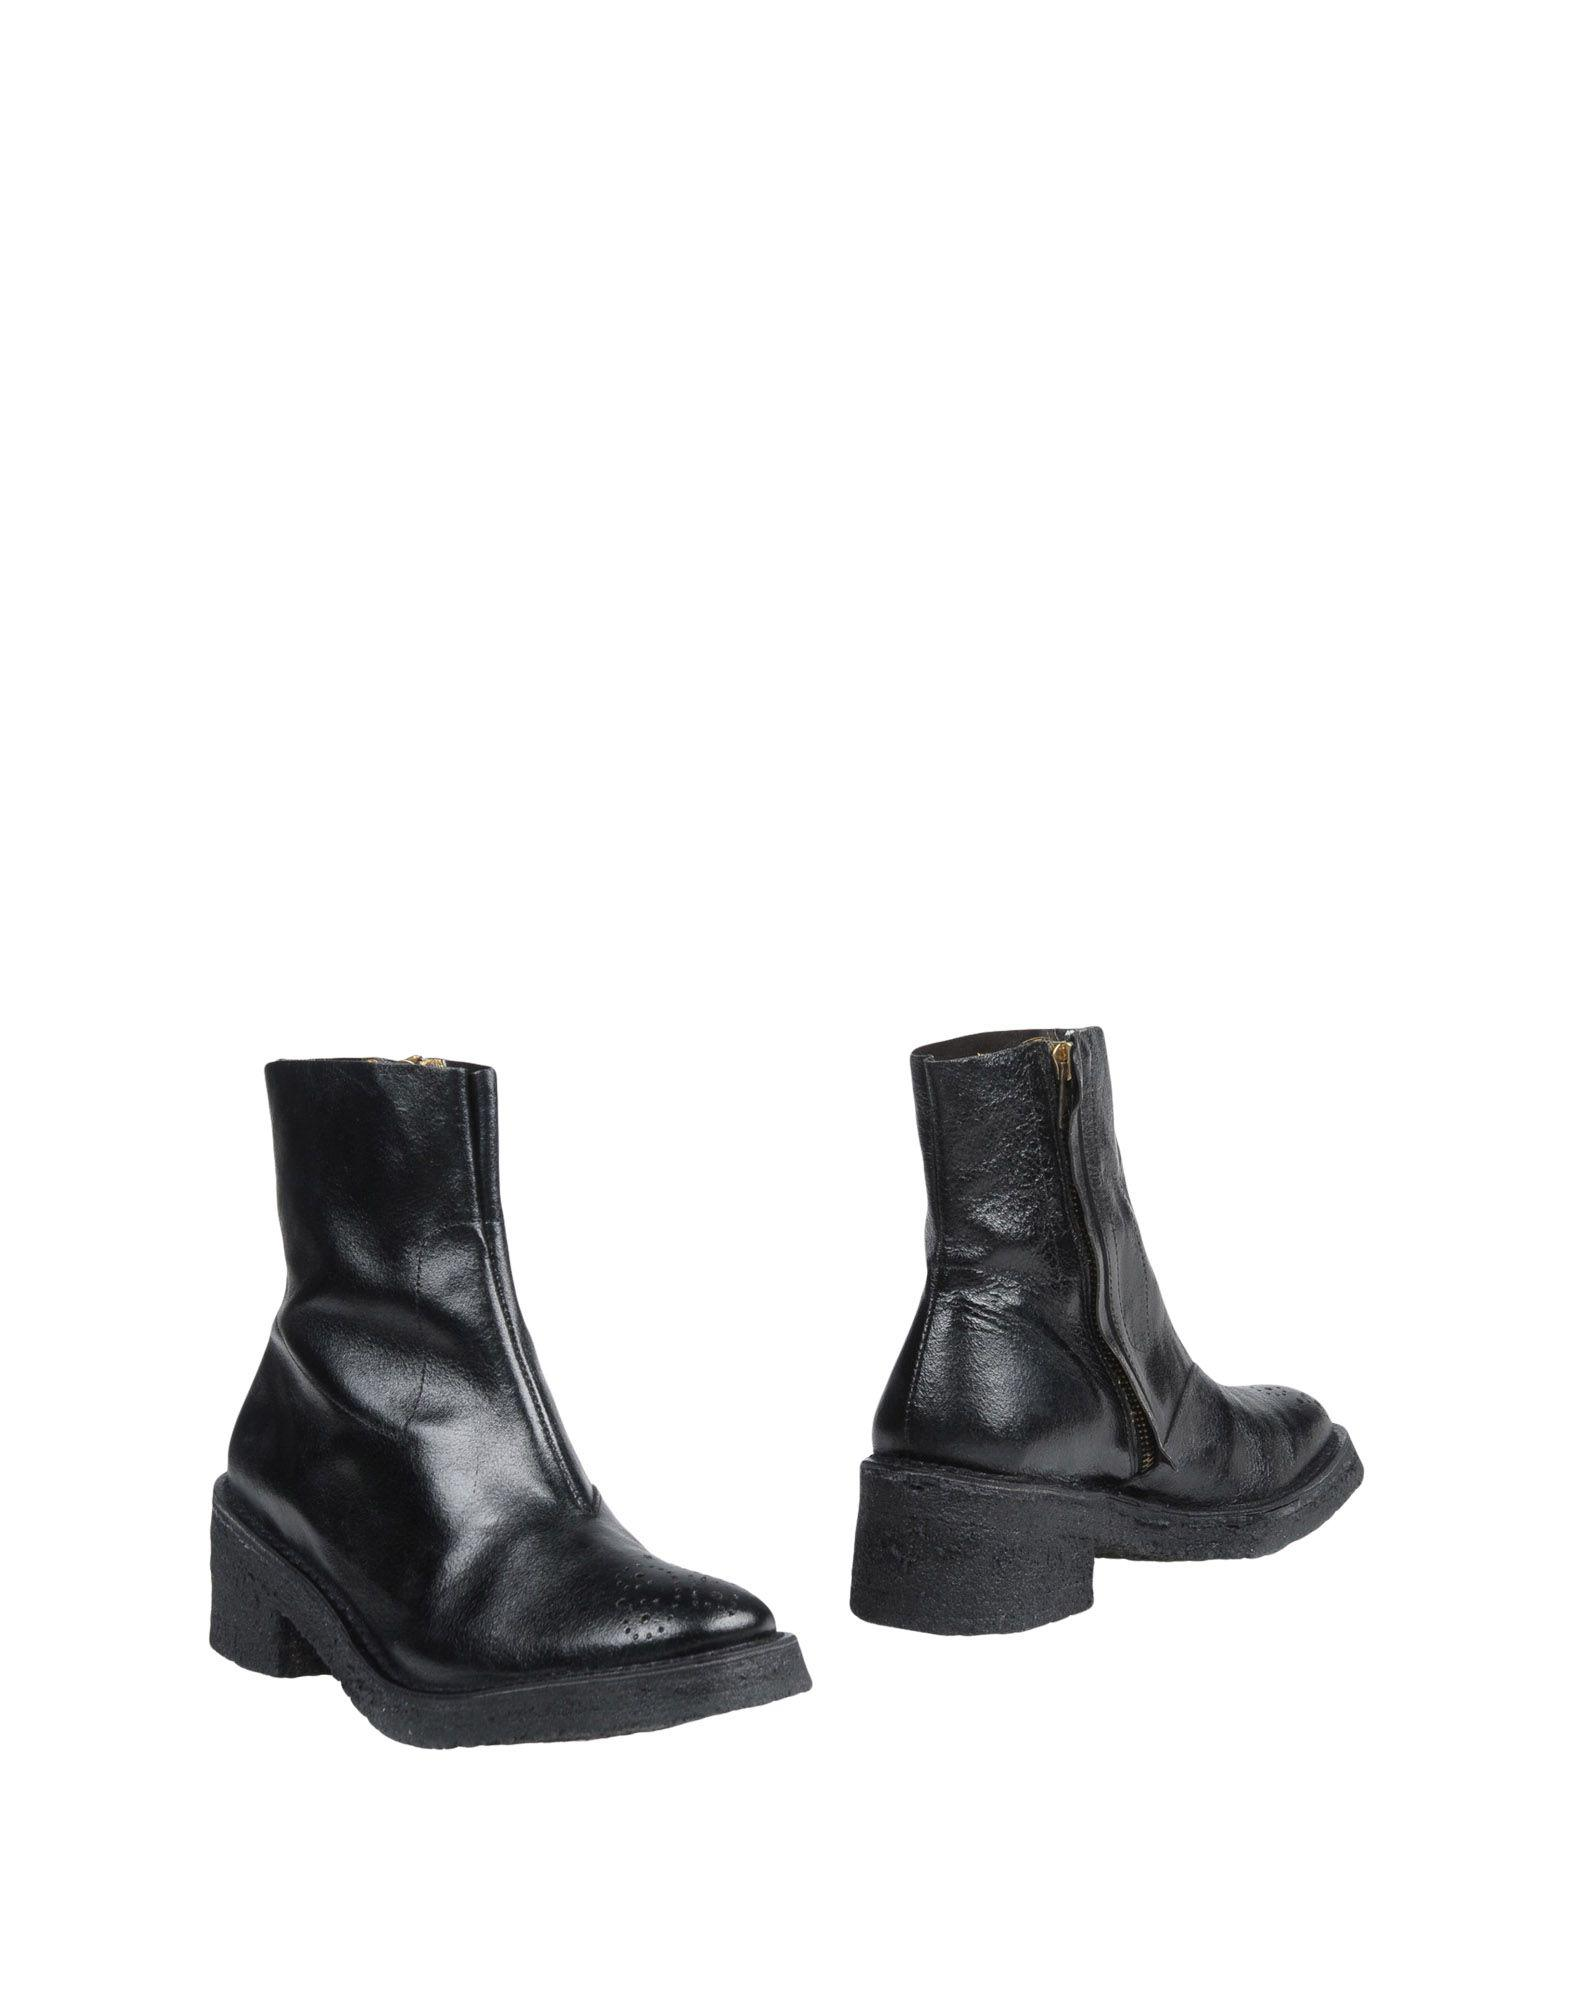 FOOTWEAR - Ankle boots on YOOX.COM Collection Priv��e uvirj1nA